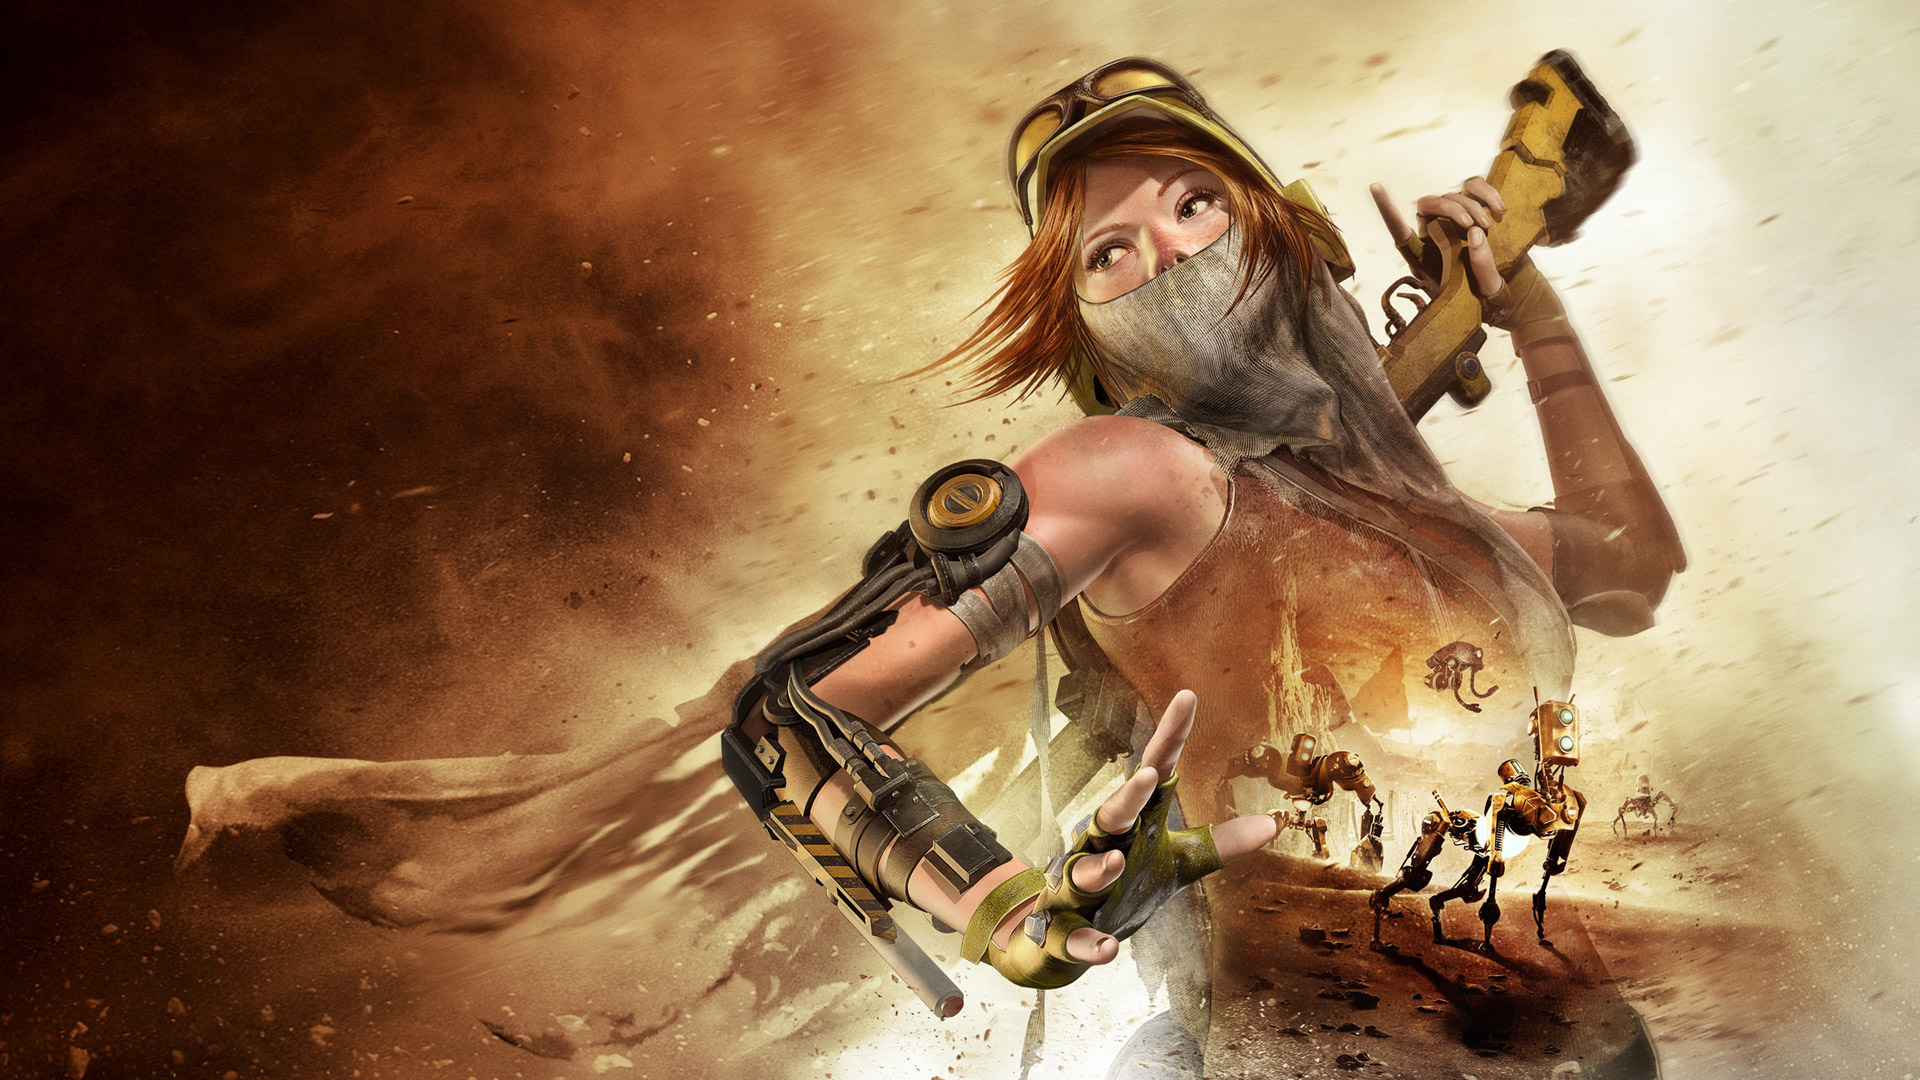 ReCore Wallpaper in 1920x1080